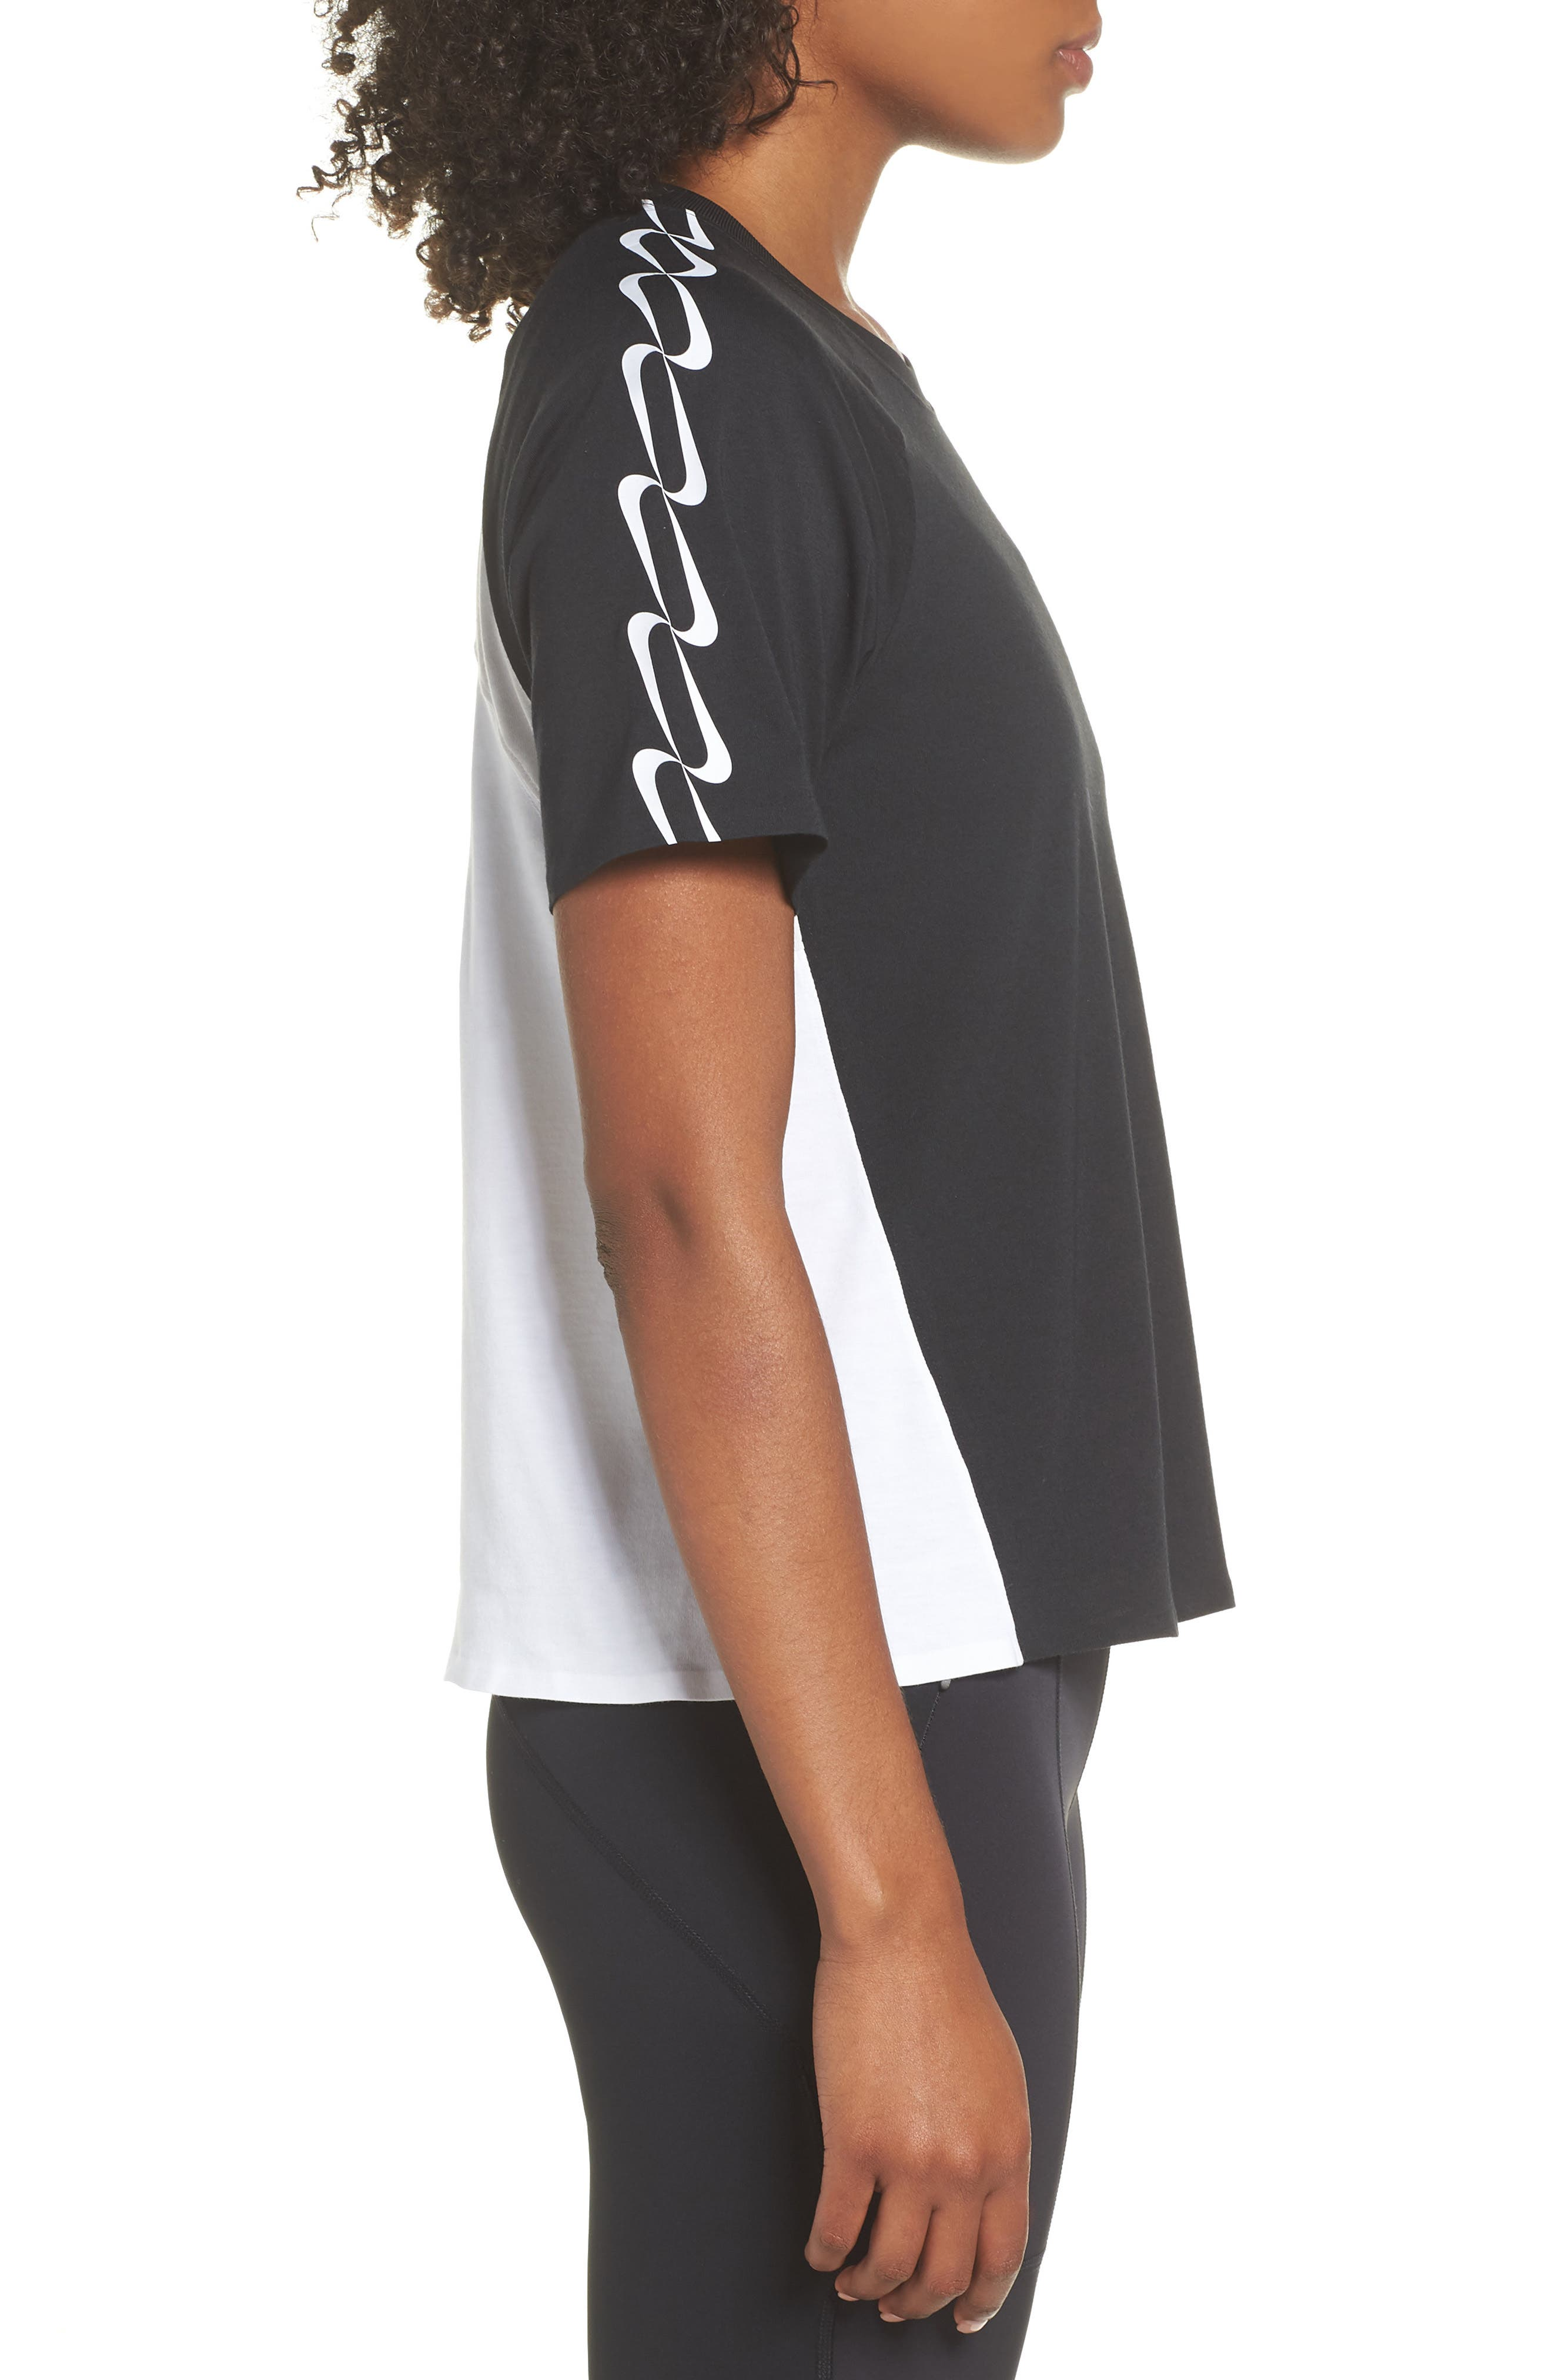 NRG Women's Dri-FIT Short Sleeve Top,                             Alternate thumbnail 3, color,                             010